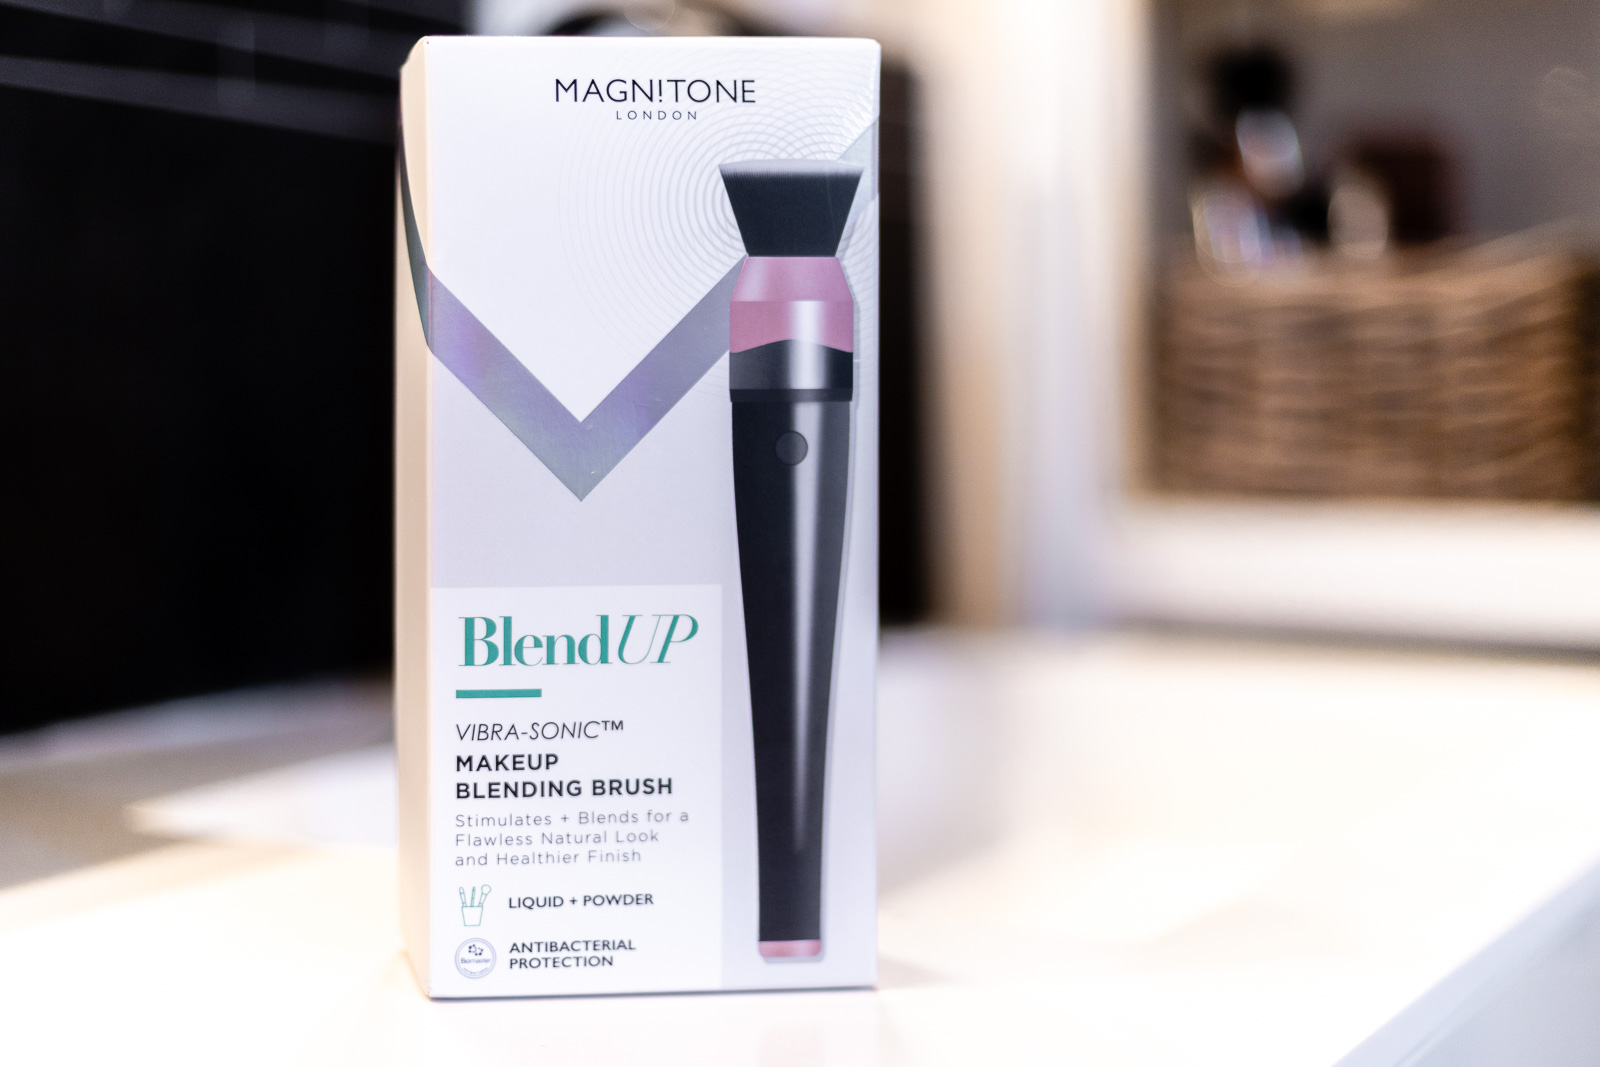 BlendUp - Vibra-Sonic Makeup Pinsel von Magnitone London // Beauty Blog, www.miss-classy.com #beauty #makeup #beautyblog